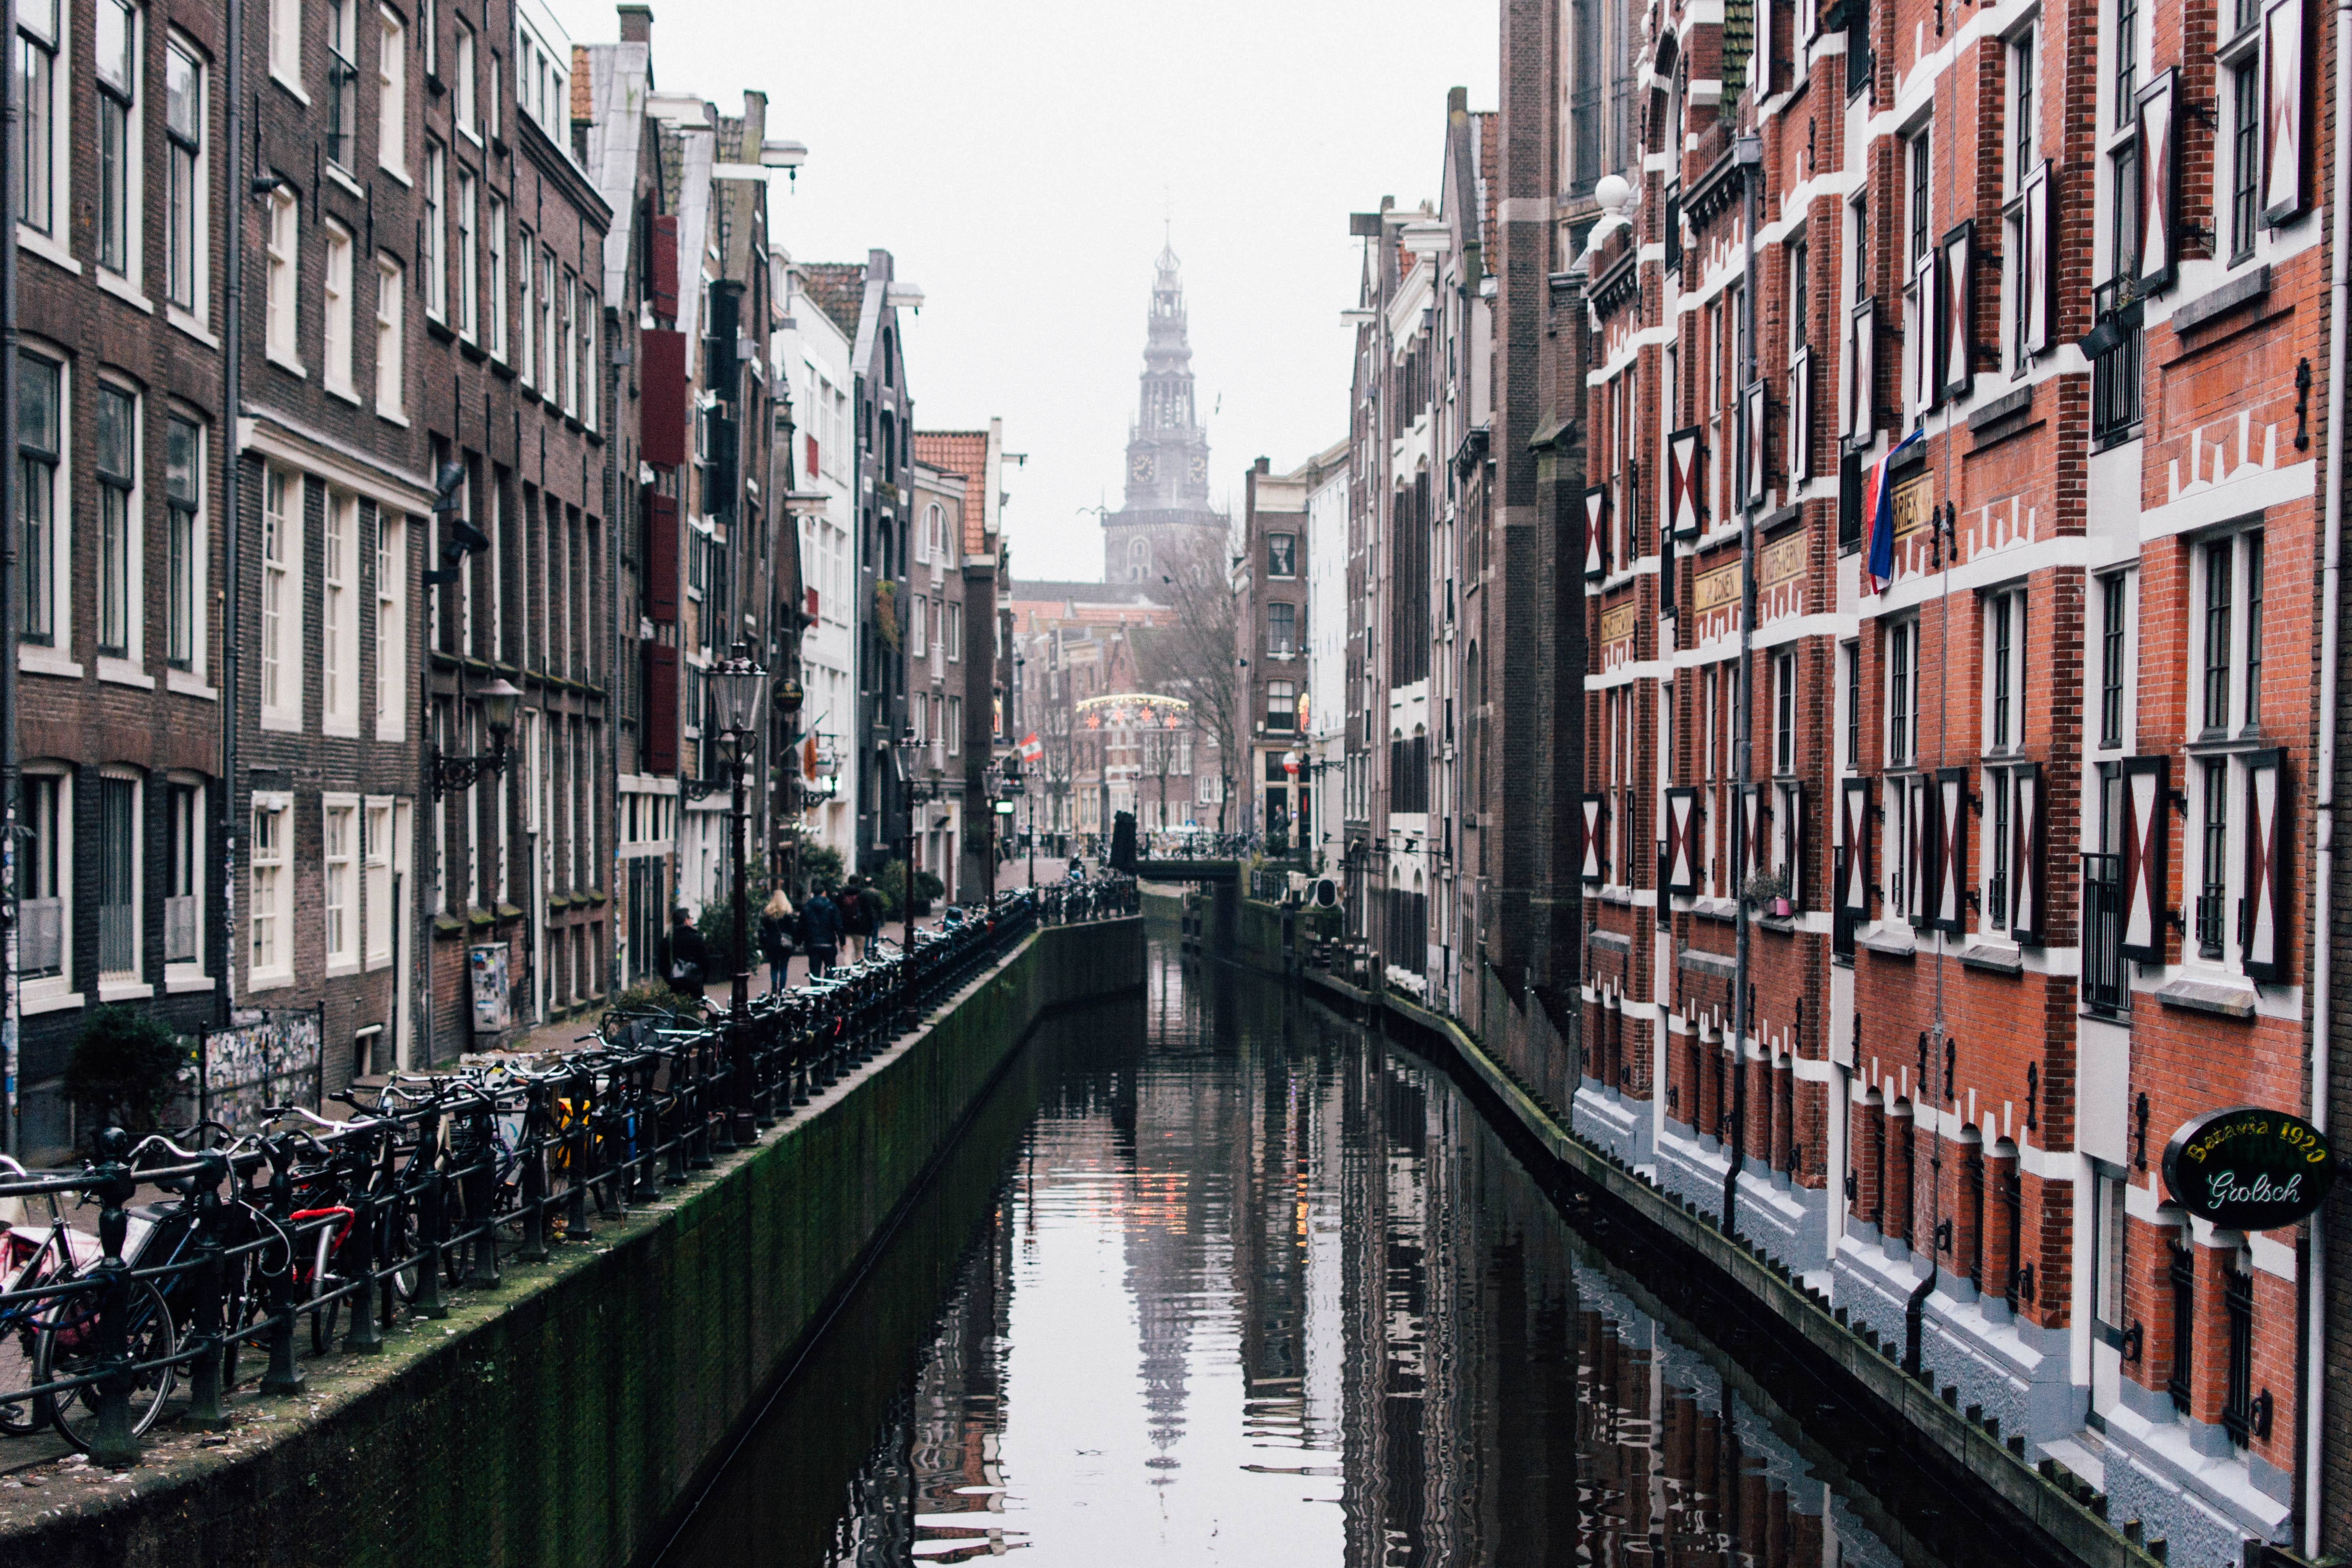 Photography of Buildings Near the Canal, Amsterdam, Misty, Water, Urban, HQ Photo